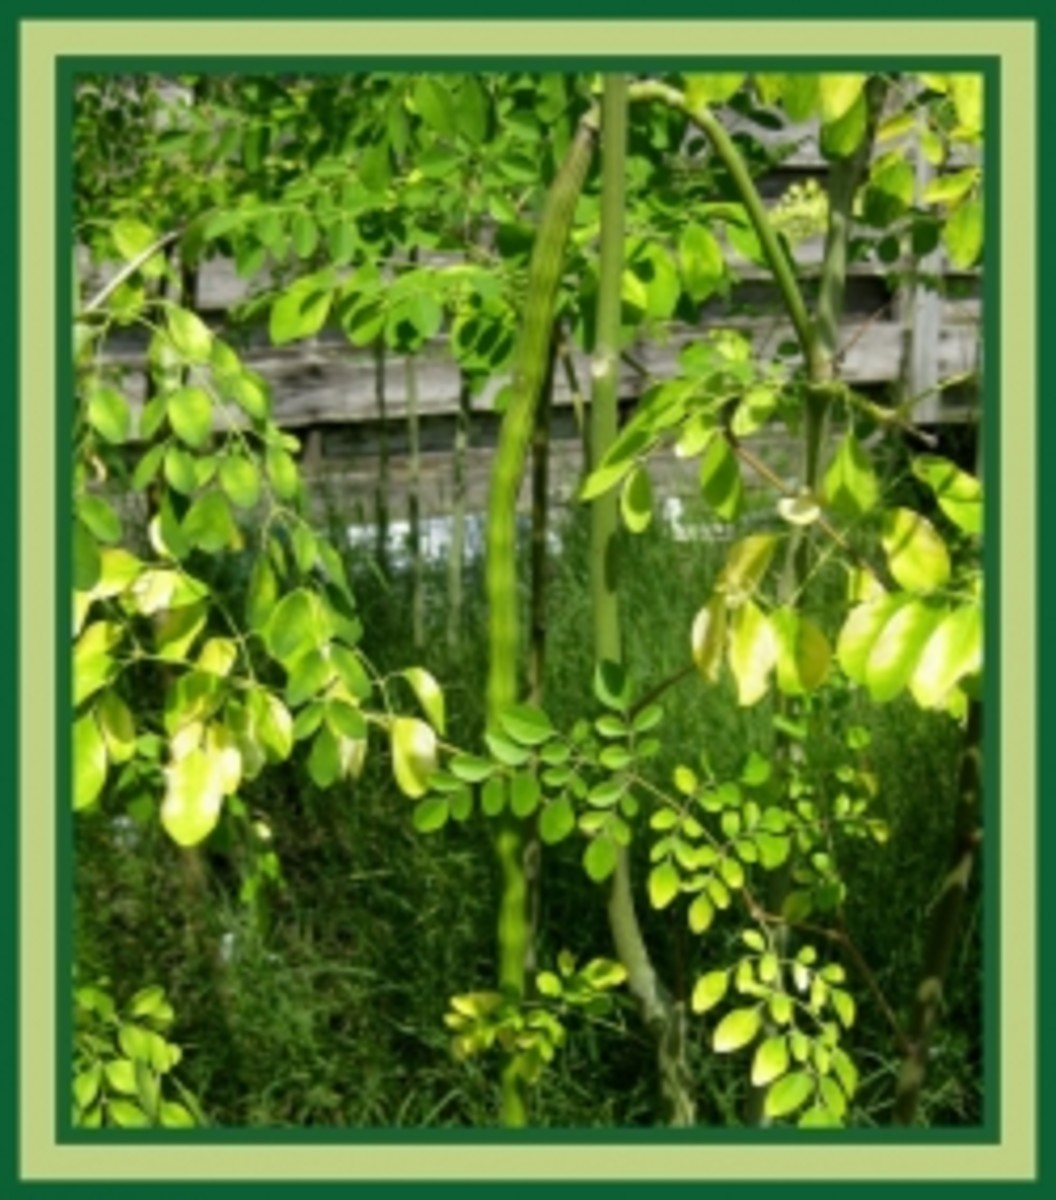 A few drumsticks on our Moringa trees